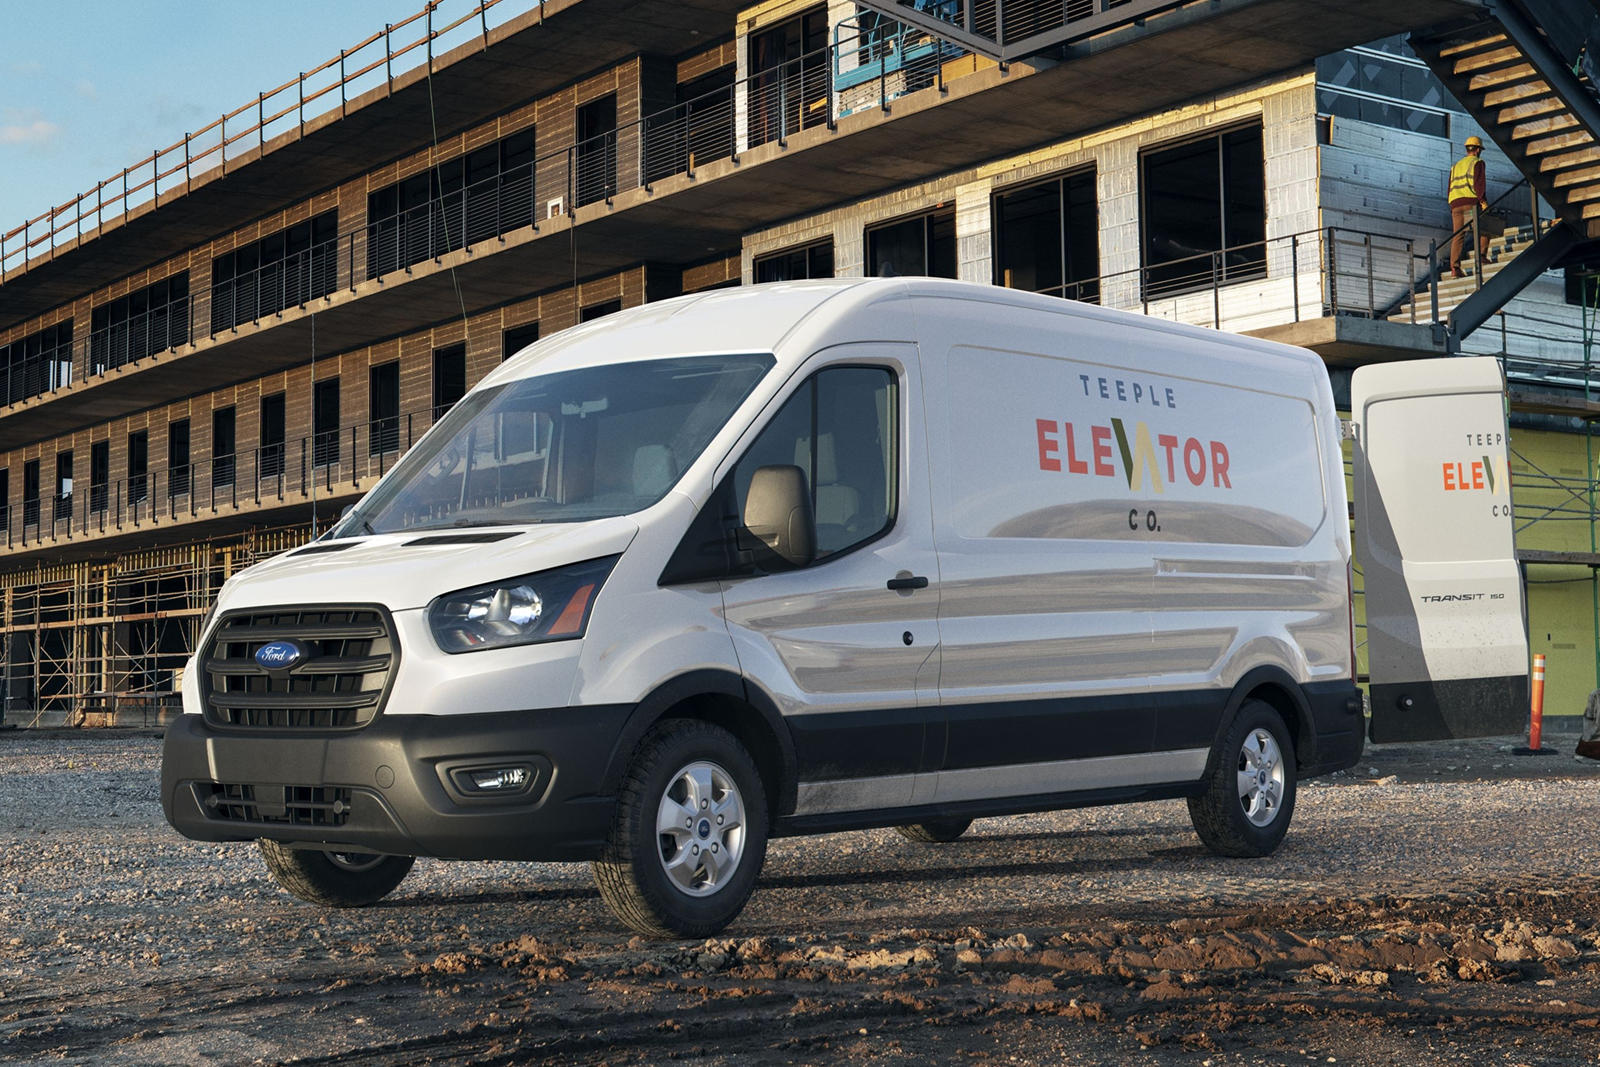 2020 ford transit cargo van review trims specs price new interior features exterior design and specifications carbuzz carbuzz